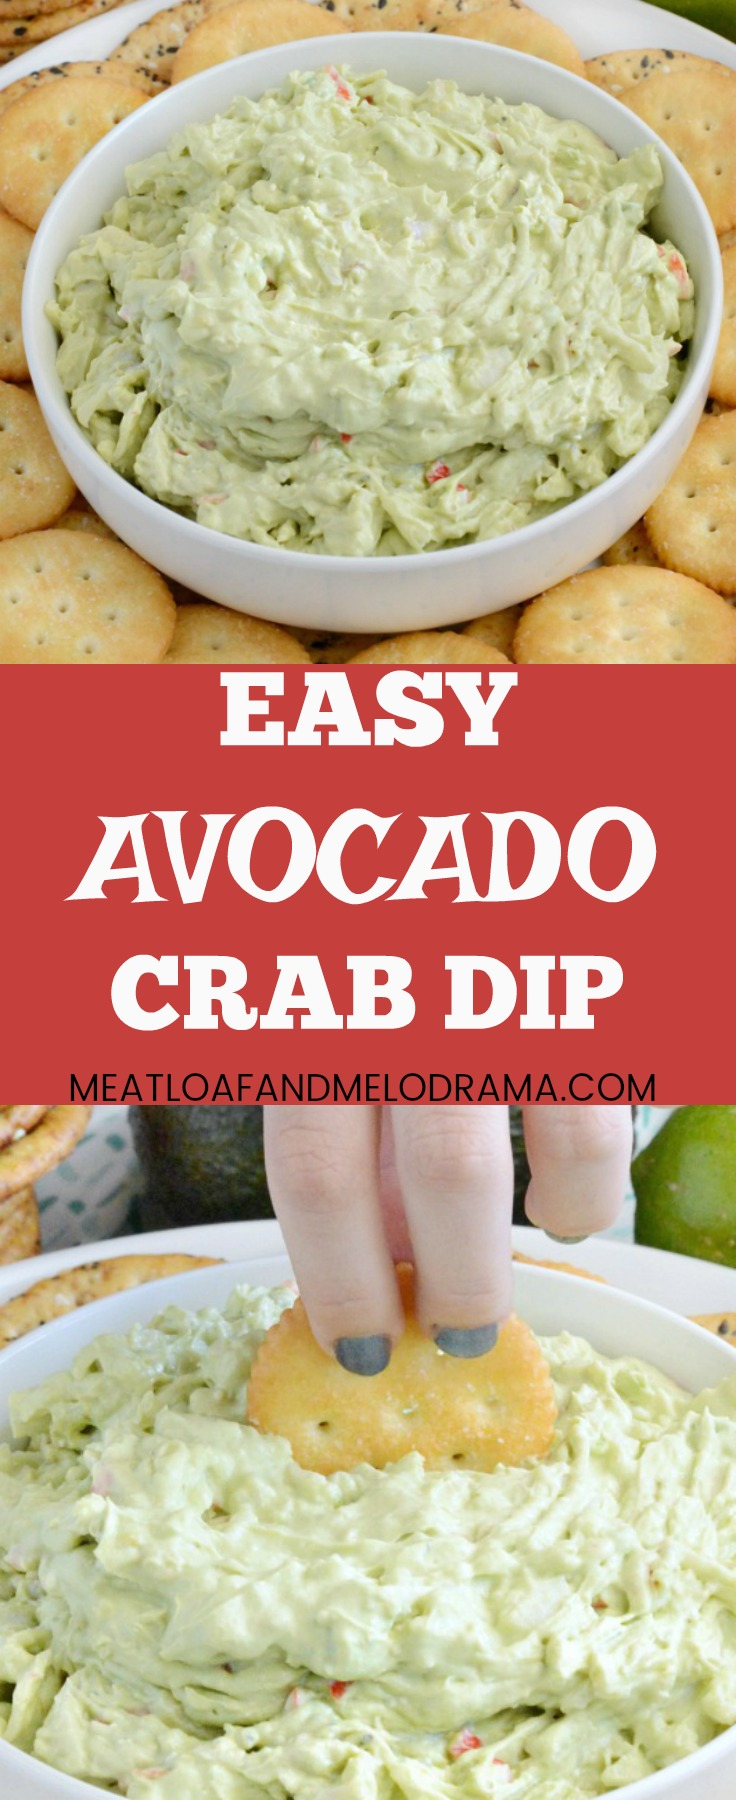 Easy Avocado Crab Dip - Meatloaf and Melodrama